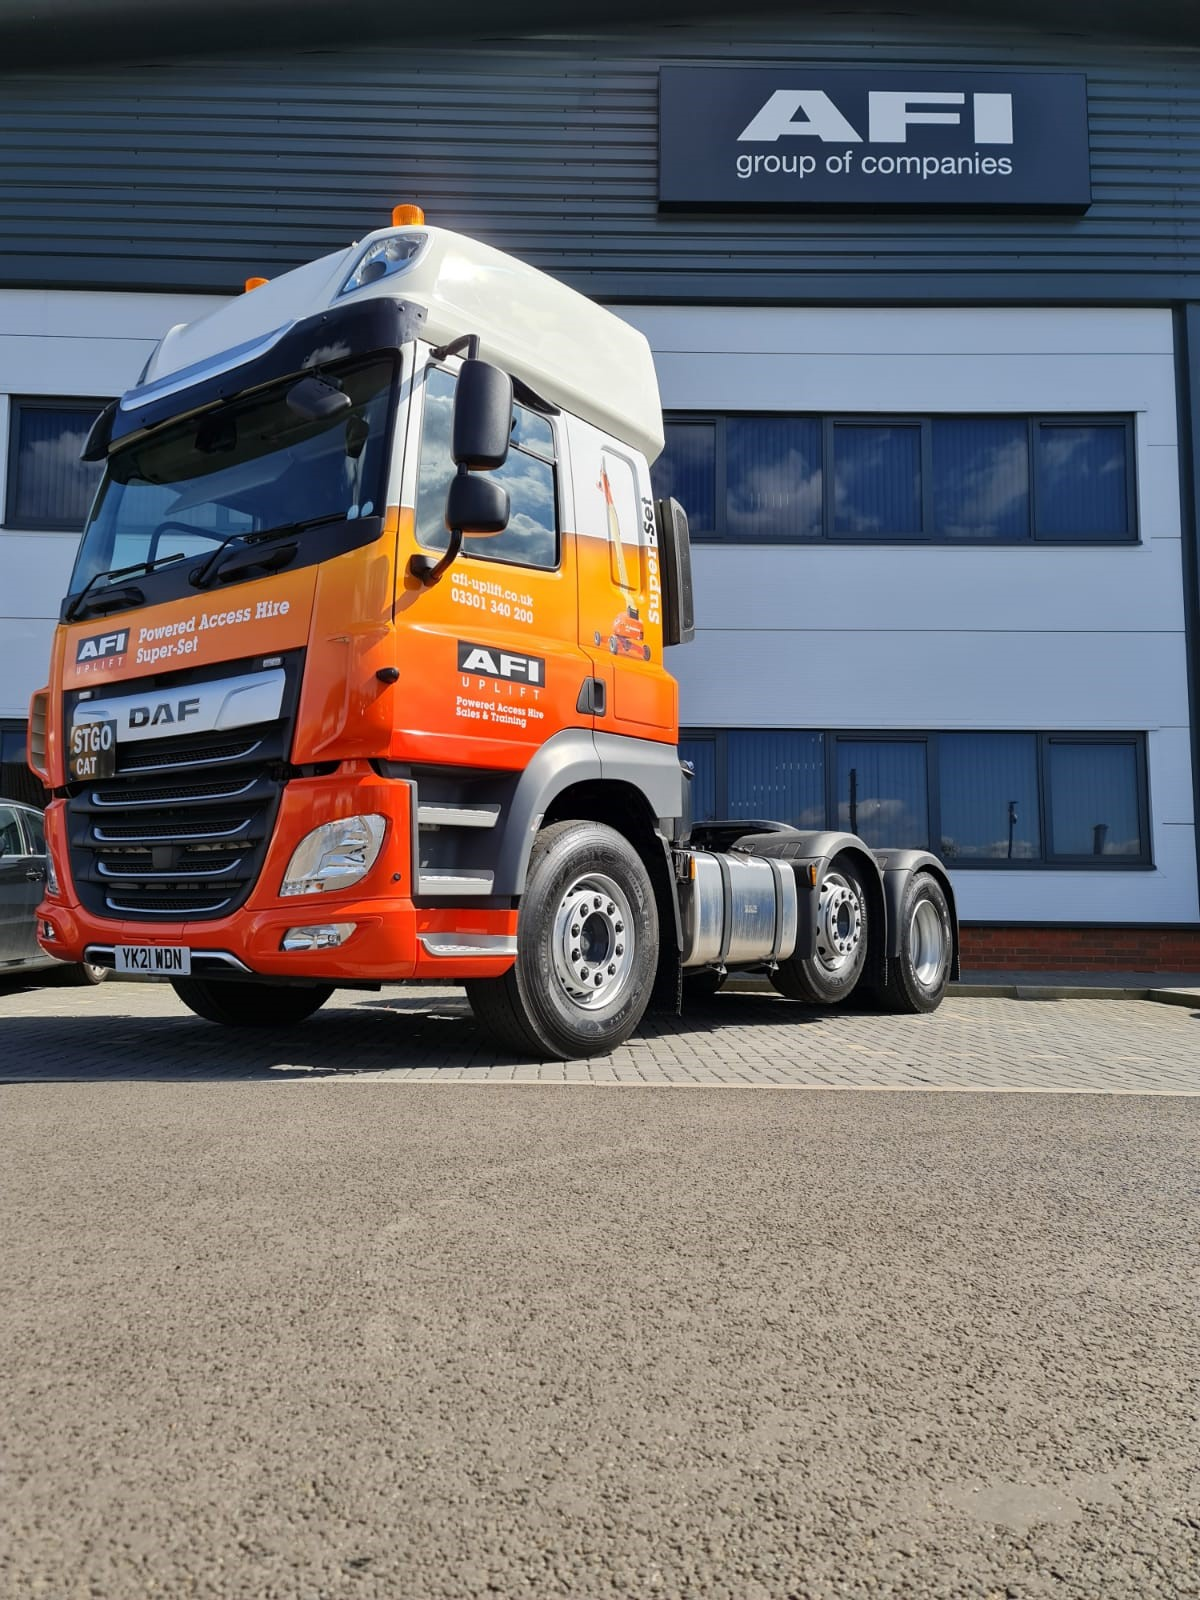 AFI invests to double delivery capacity for Super-Set range of large MEWPs